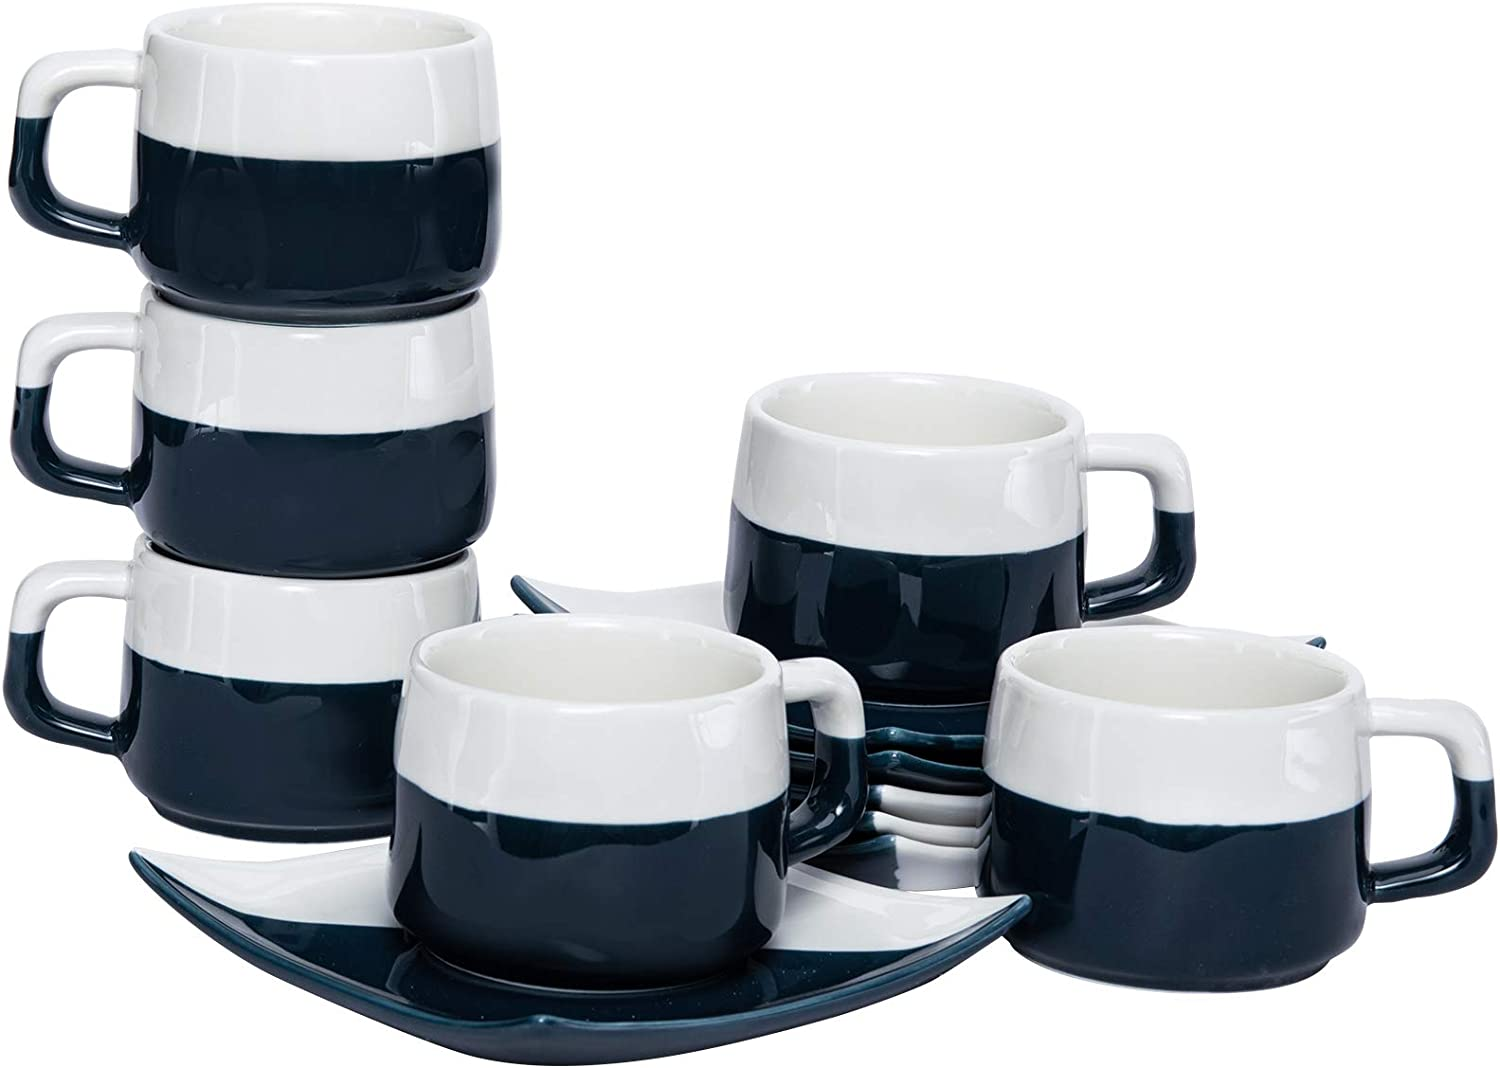 Hompiks Espresso Cups with Saucers Porcelain Tea Cup and Saucer Set, 5 oz for Coffee Cappuccino Latte and Tea Set of 6 Dark Blue